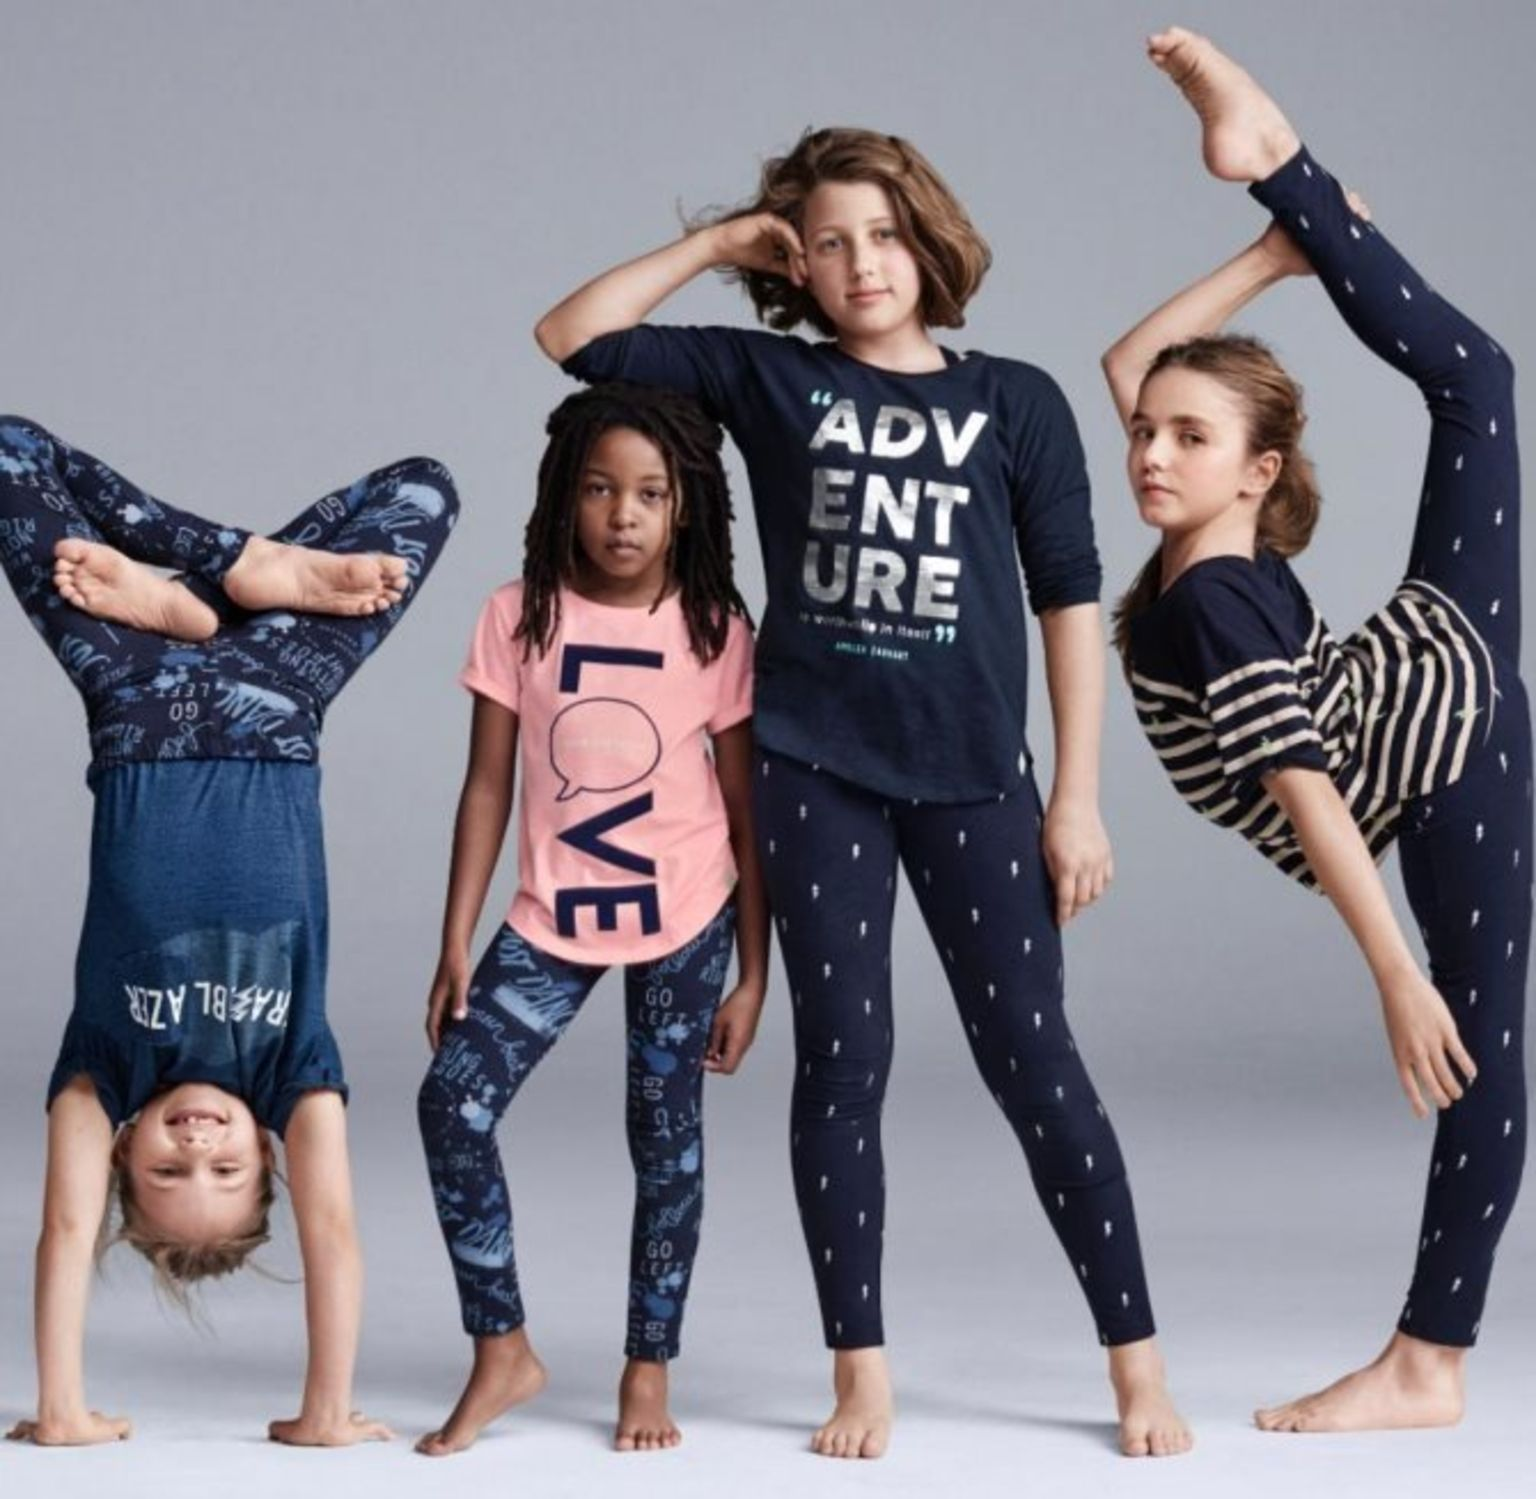 gap advert